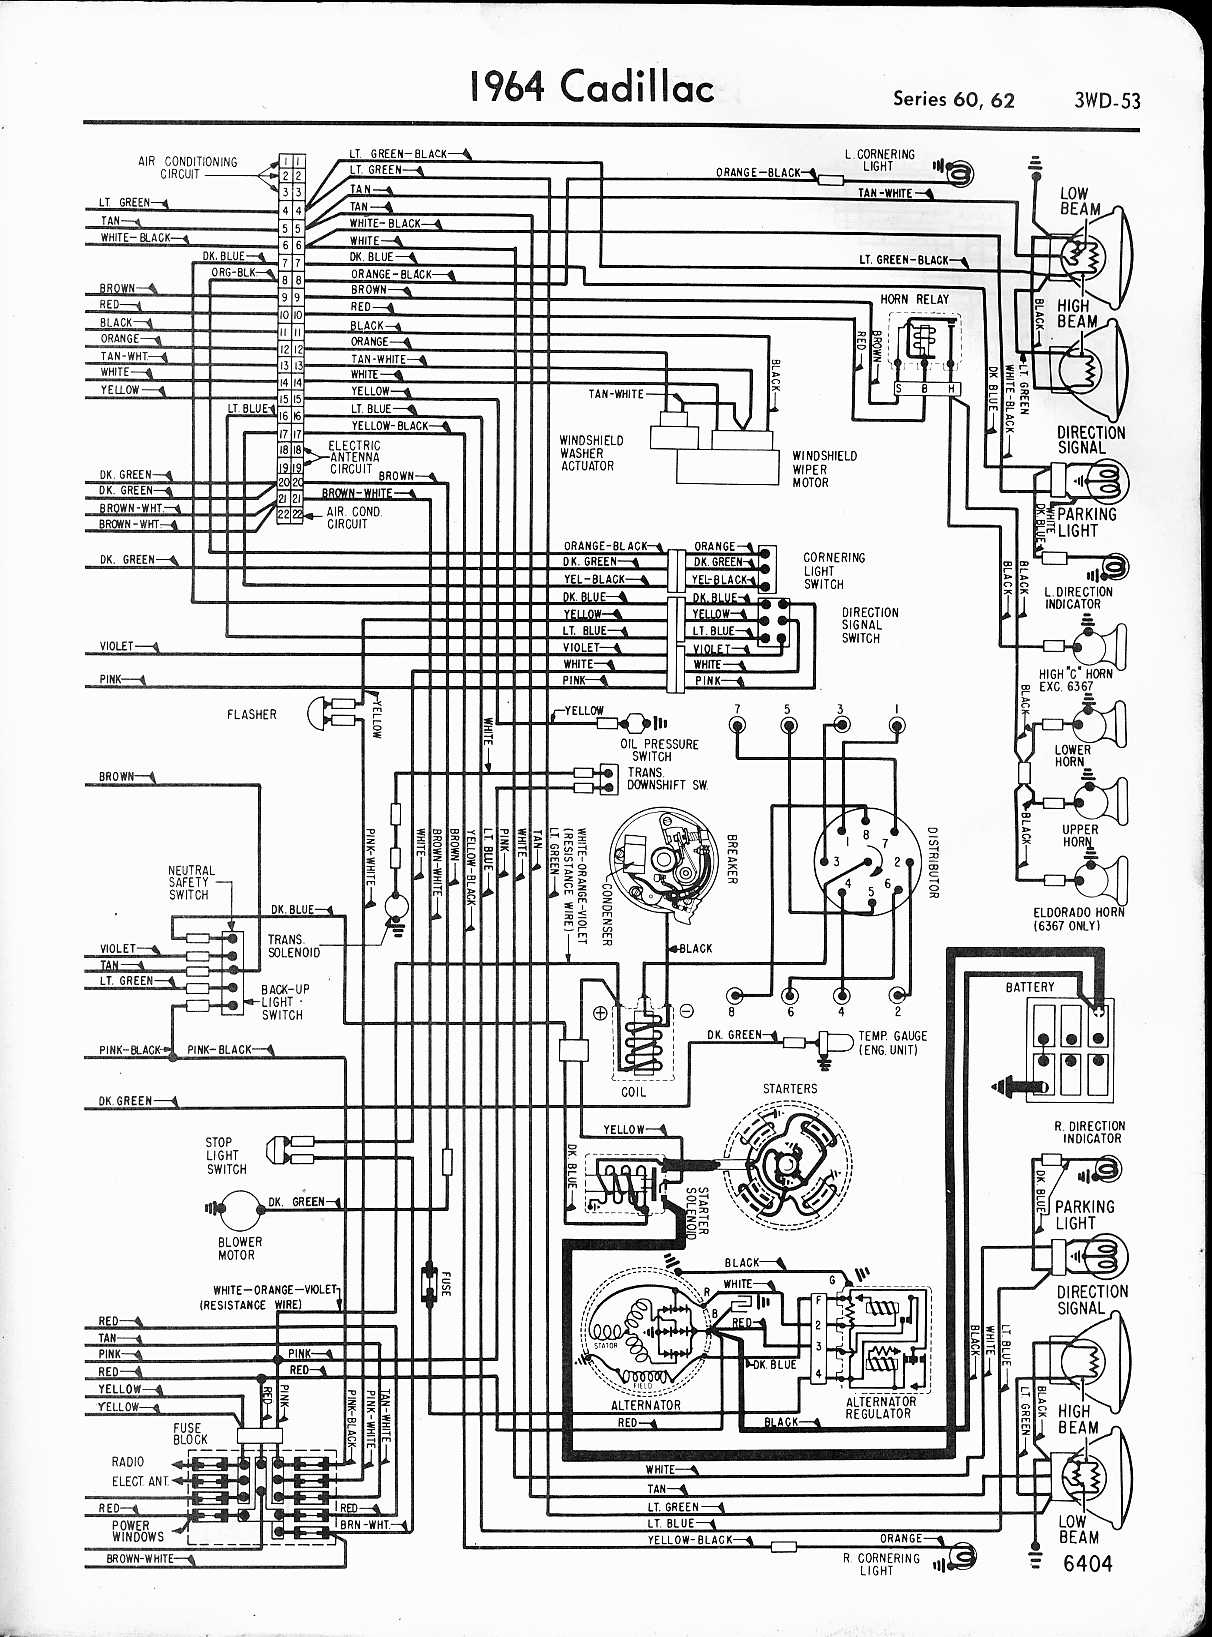 wiring diagram for 1964 chevy impala 1964 cadillac wiring diagram 1964 wiring diagrams online cadillac wiring diagrams 1957 1965